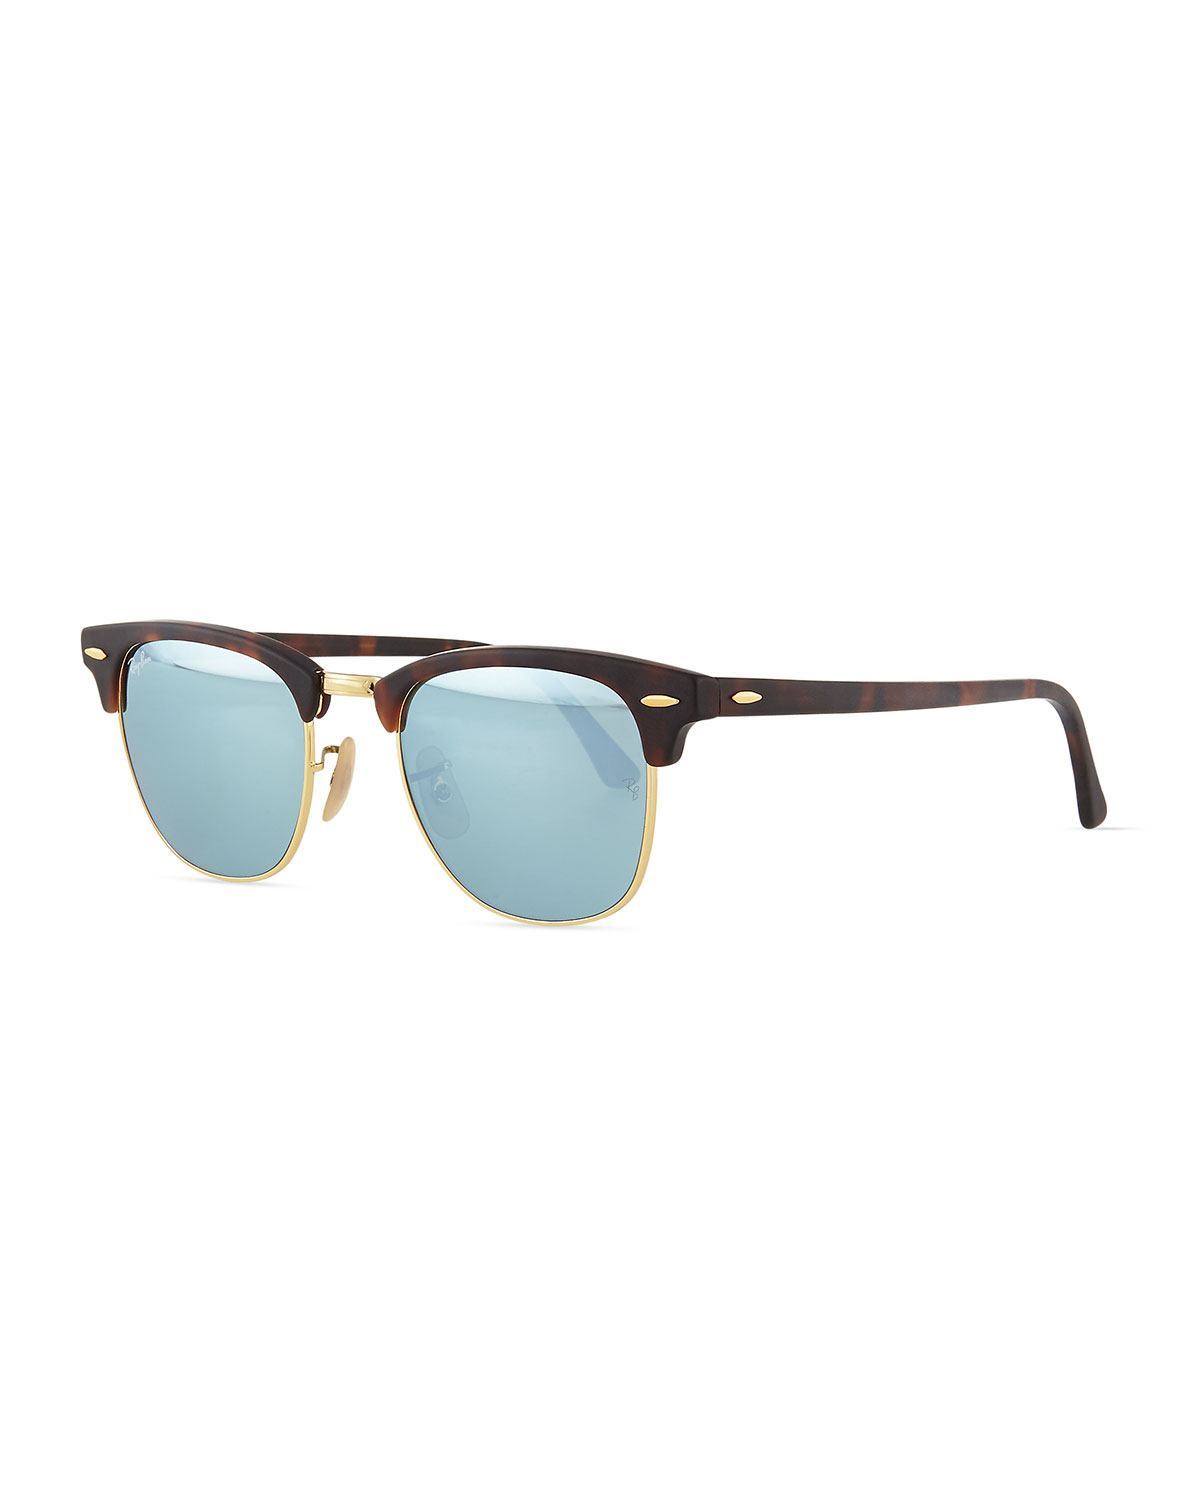 Ray-Ban Clubmaster Half-Rimmed Sunglasses, Tortoise/Silver